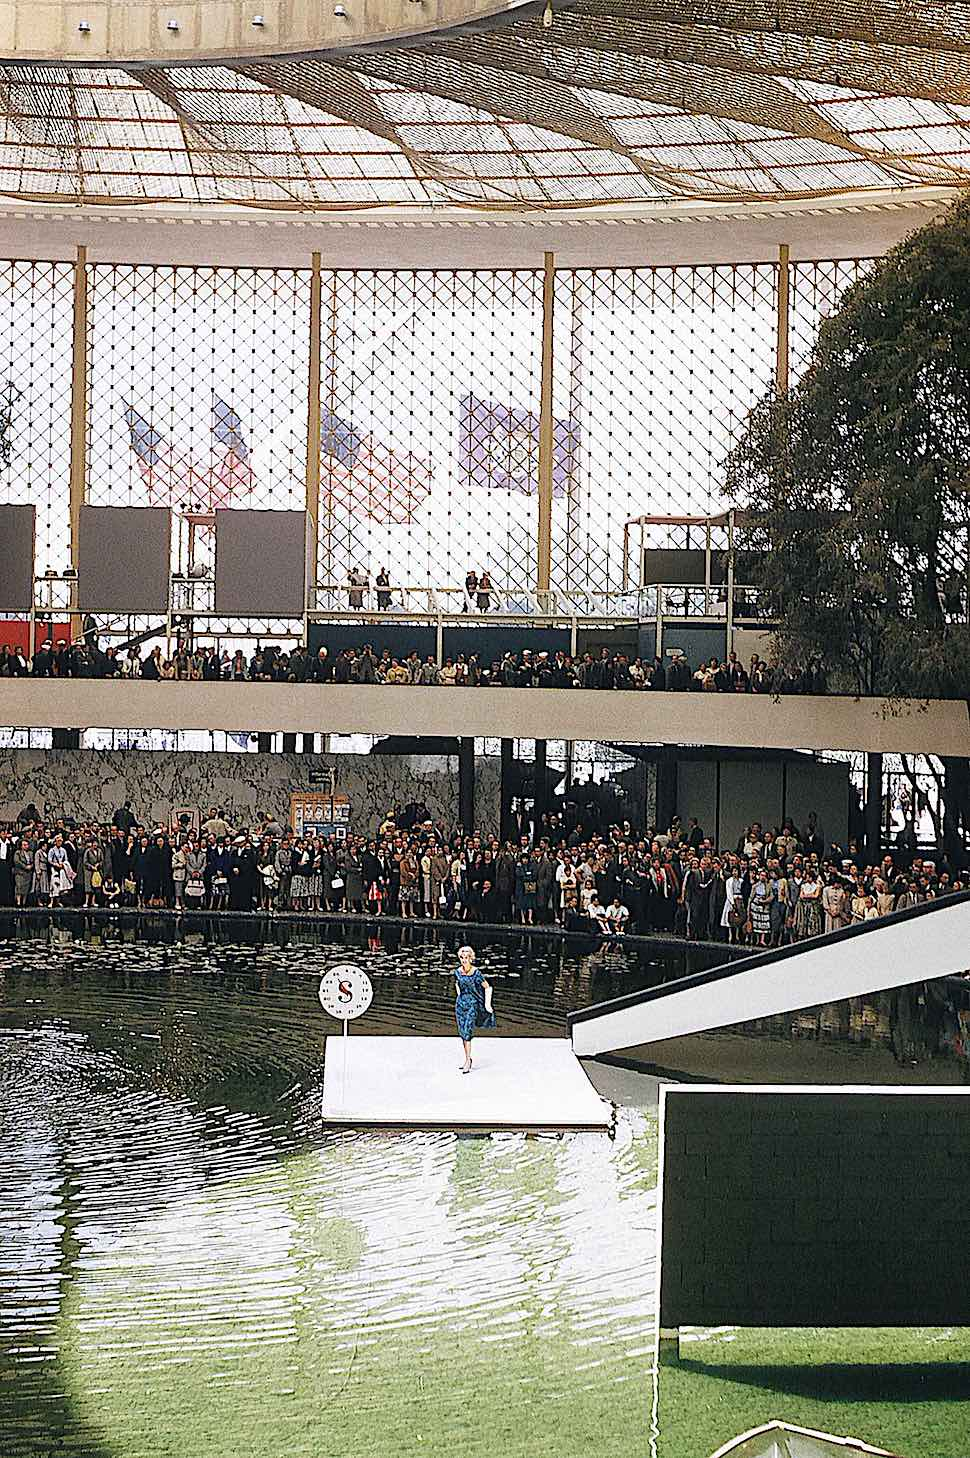 the 1958 World's Fair in Brussels, a color photograph of an event at the interior pond